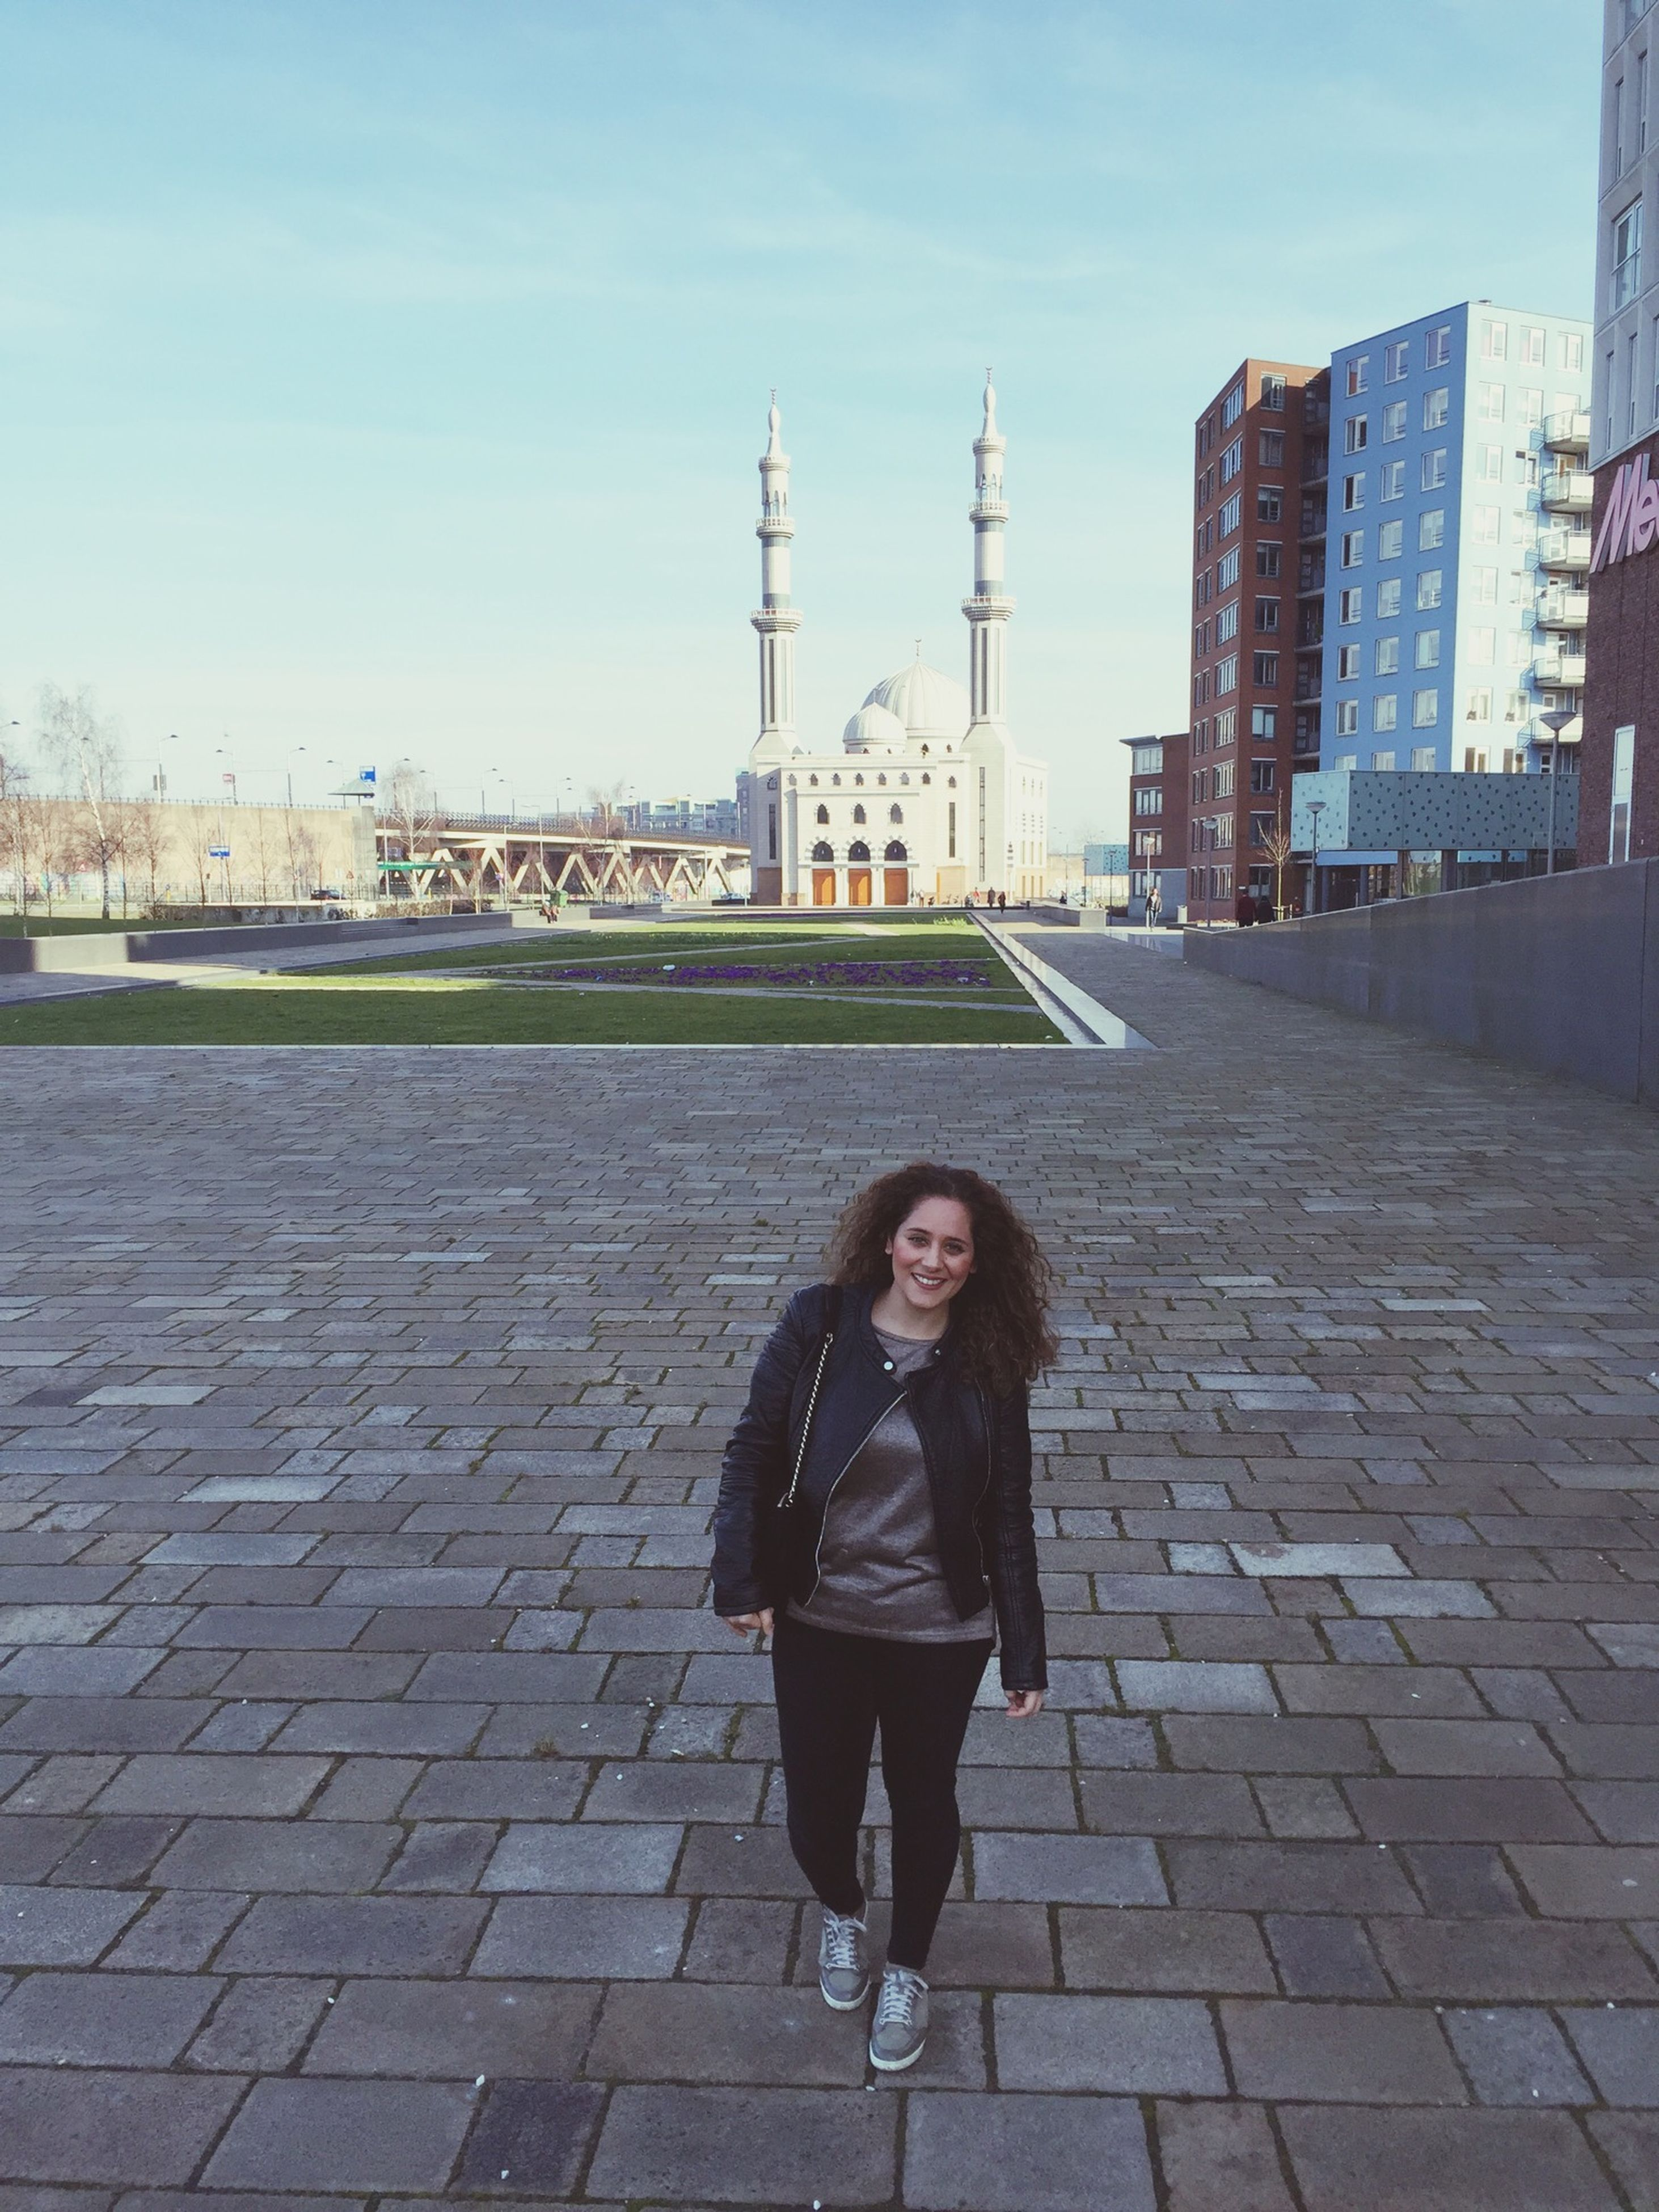 architecture, building exterior, built structure, lifestyles, casual clothing, standing, leisure activity, young adult, full length, sky, city, person, front view, young women, rear view, outdoors, day, looking at camera